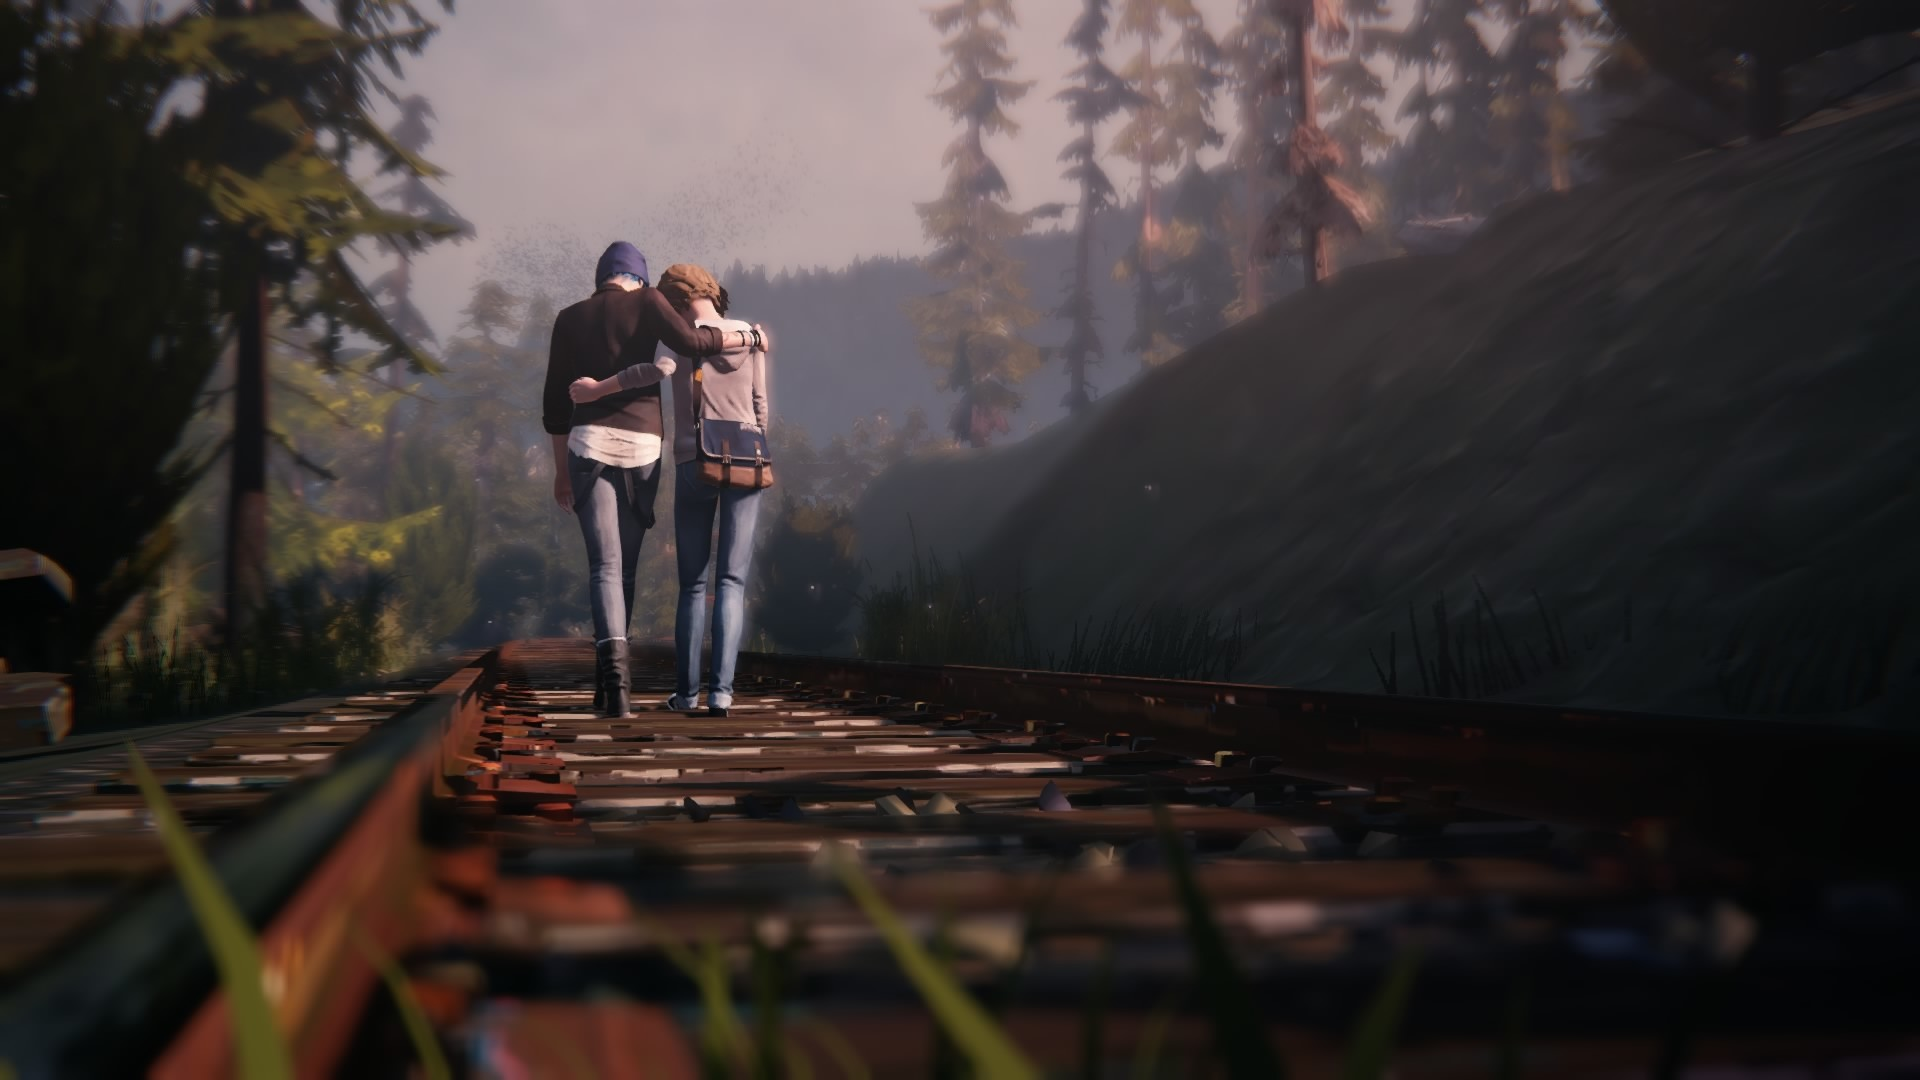 1920x1080 Genny Walters: Life Is Strange Wallpapers, Life Is Strange Wallpapers |  Desktop-Screens